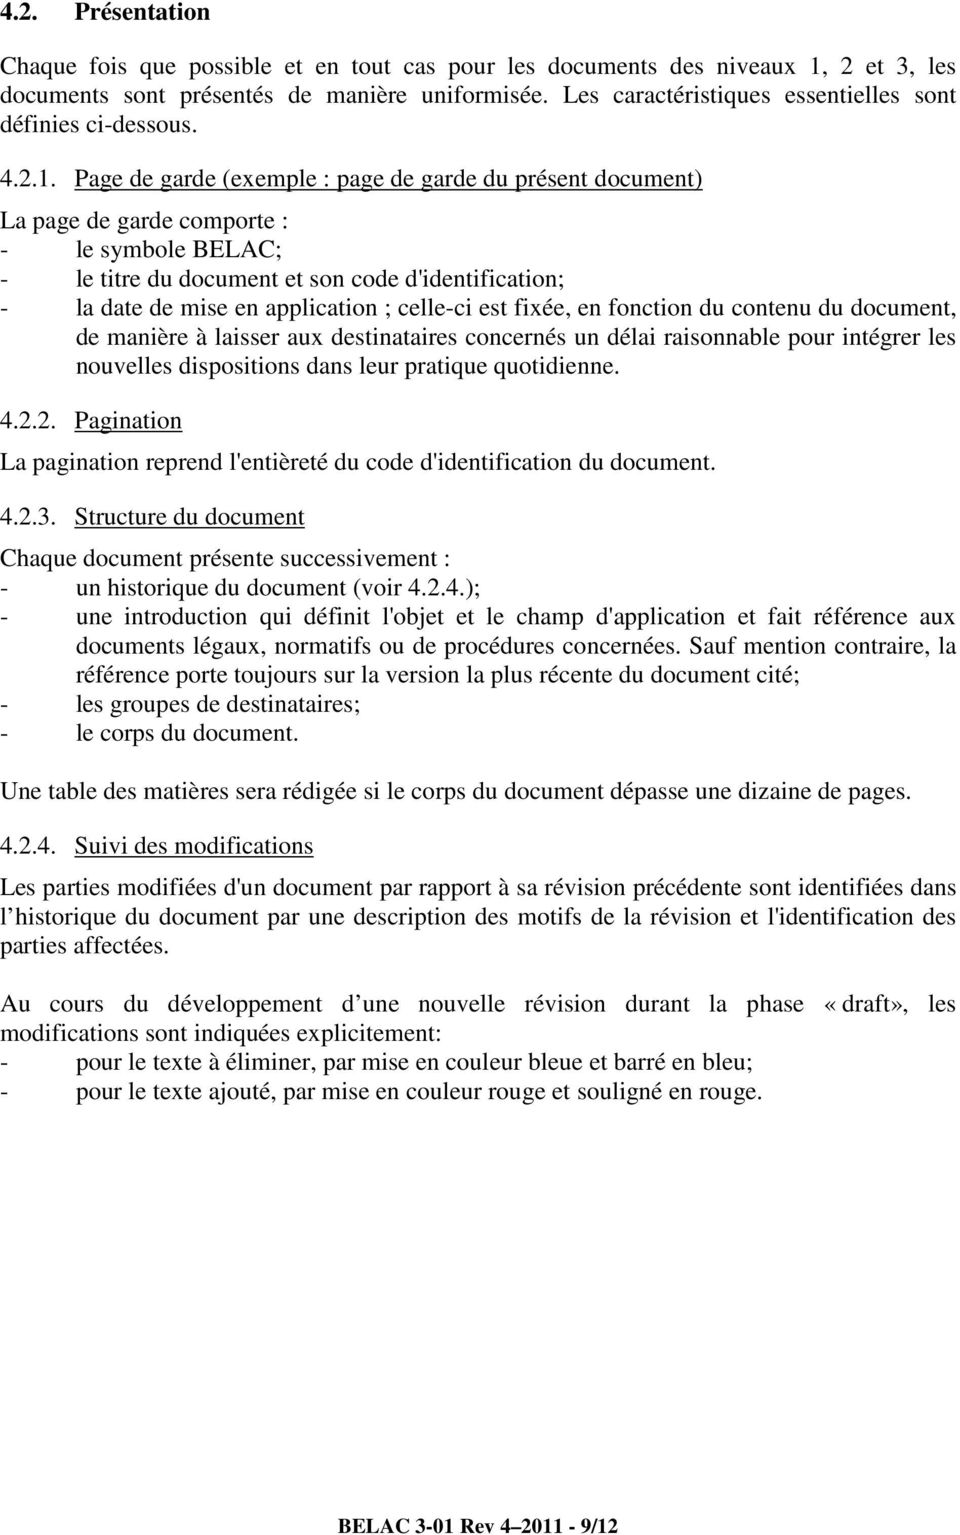 Page de garde (exemple : page de garde du présent document) La page de garde comporte : - le symbole BELAC; - le titre du document et son code d'identification; - la date de mise en application ;